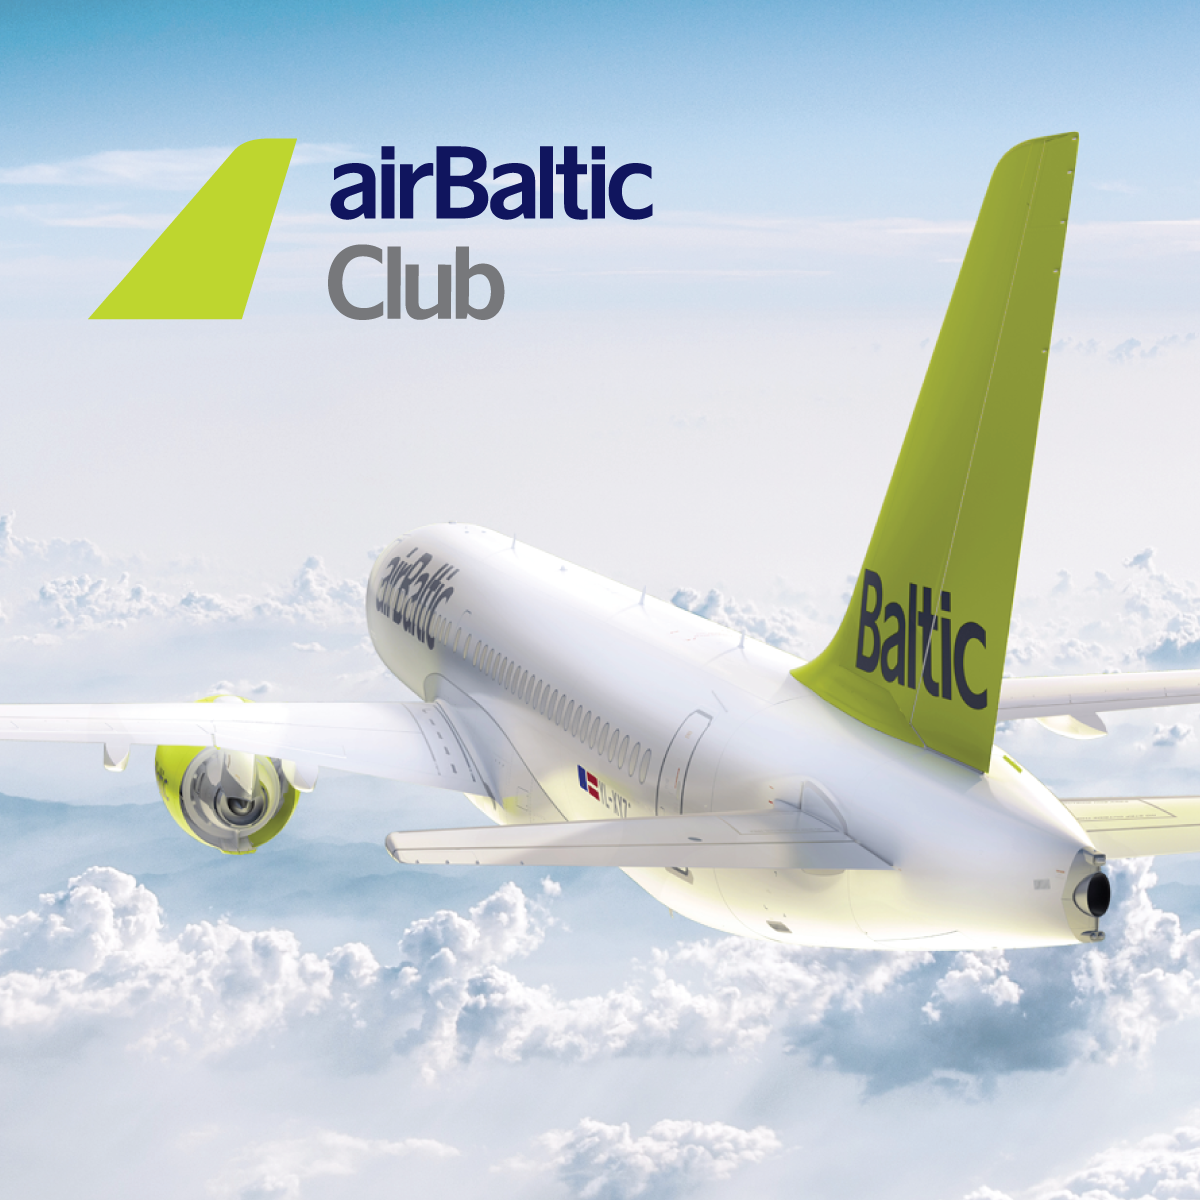 Check out special offers from airBaltic image